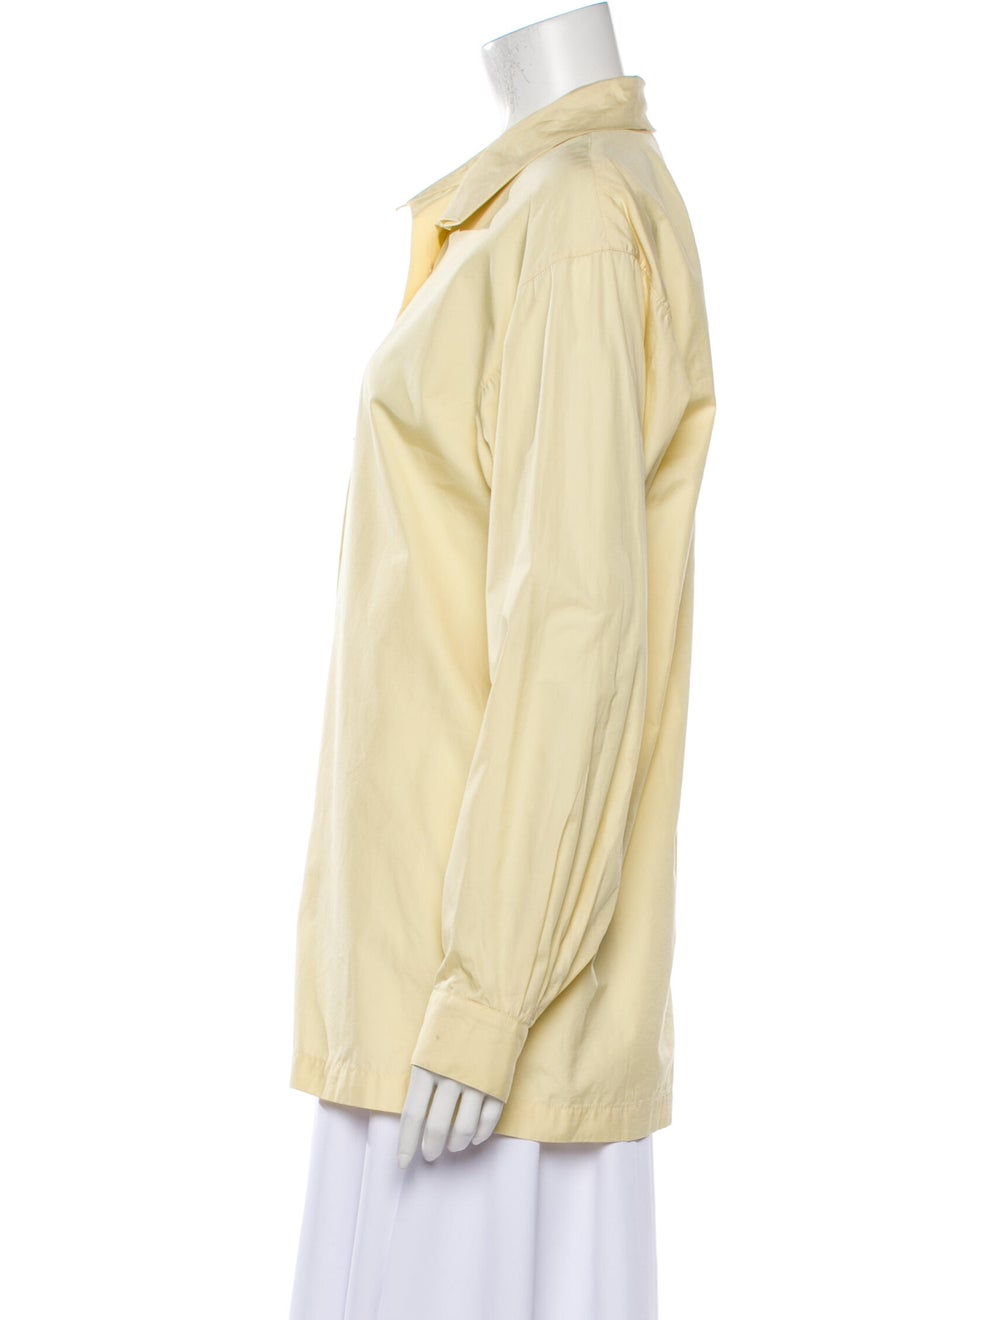 Issey Miyake 1980 Long Sleeve Button-Up Top Yellow - image 2